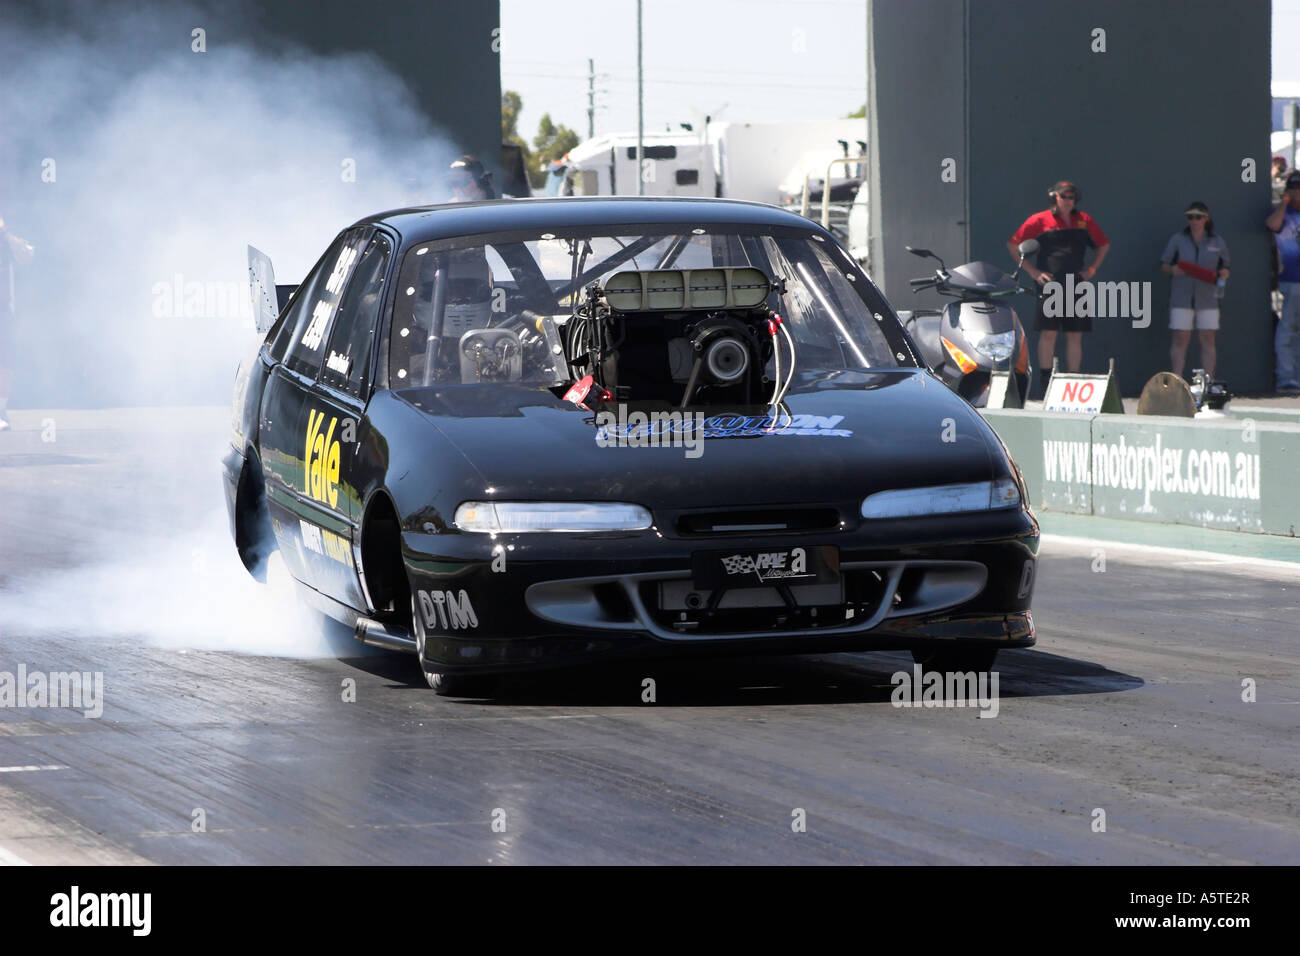 Australian Holden Commodore Supercharged Outlaws drag car performing smoky burnout on quarter mile race track Stock Photo